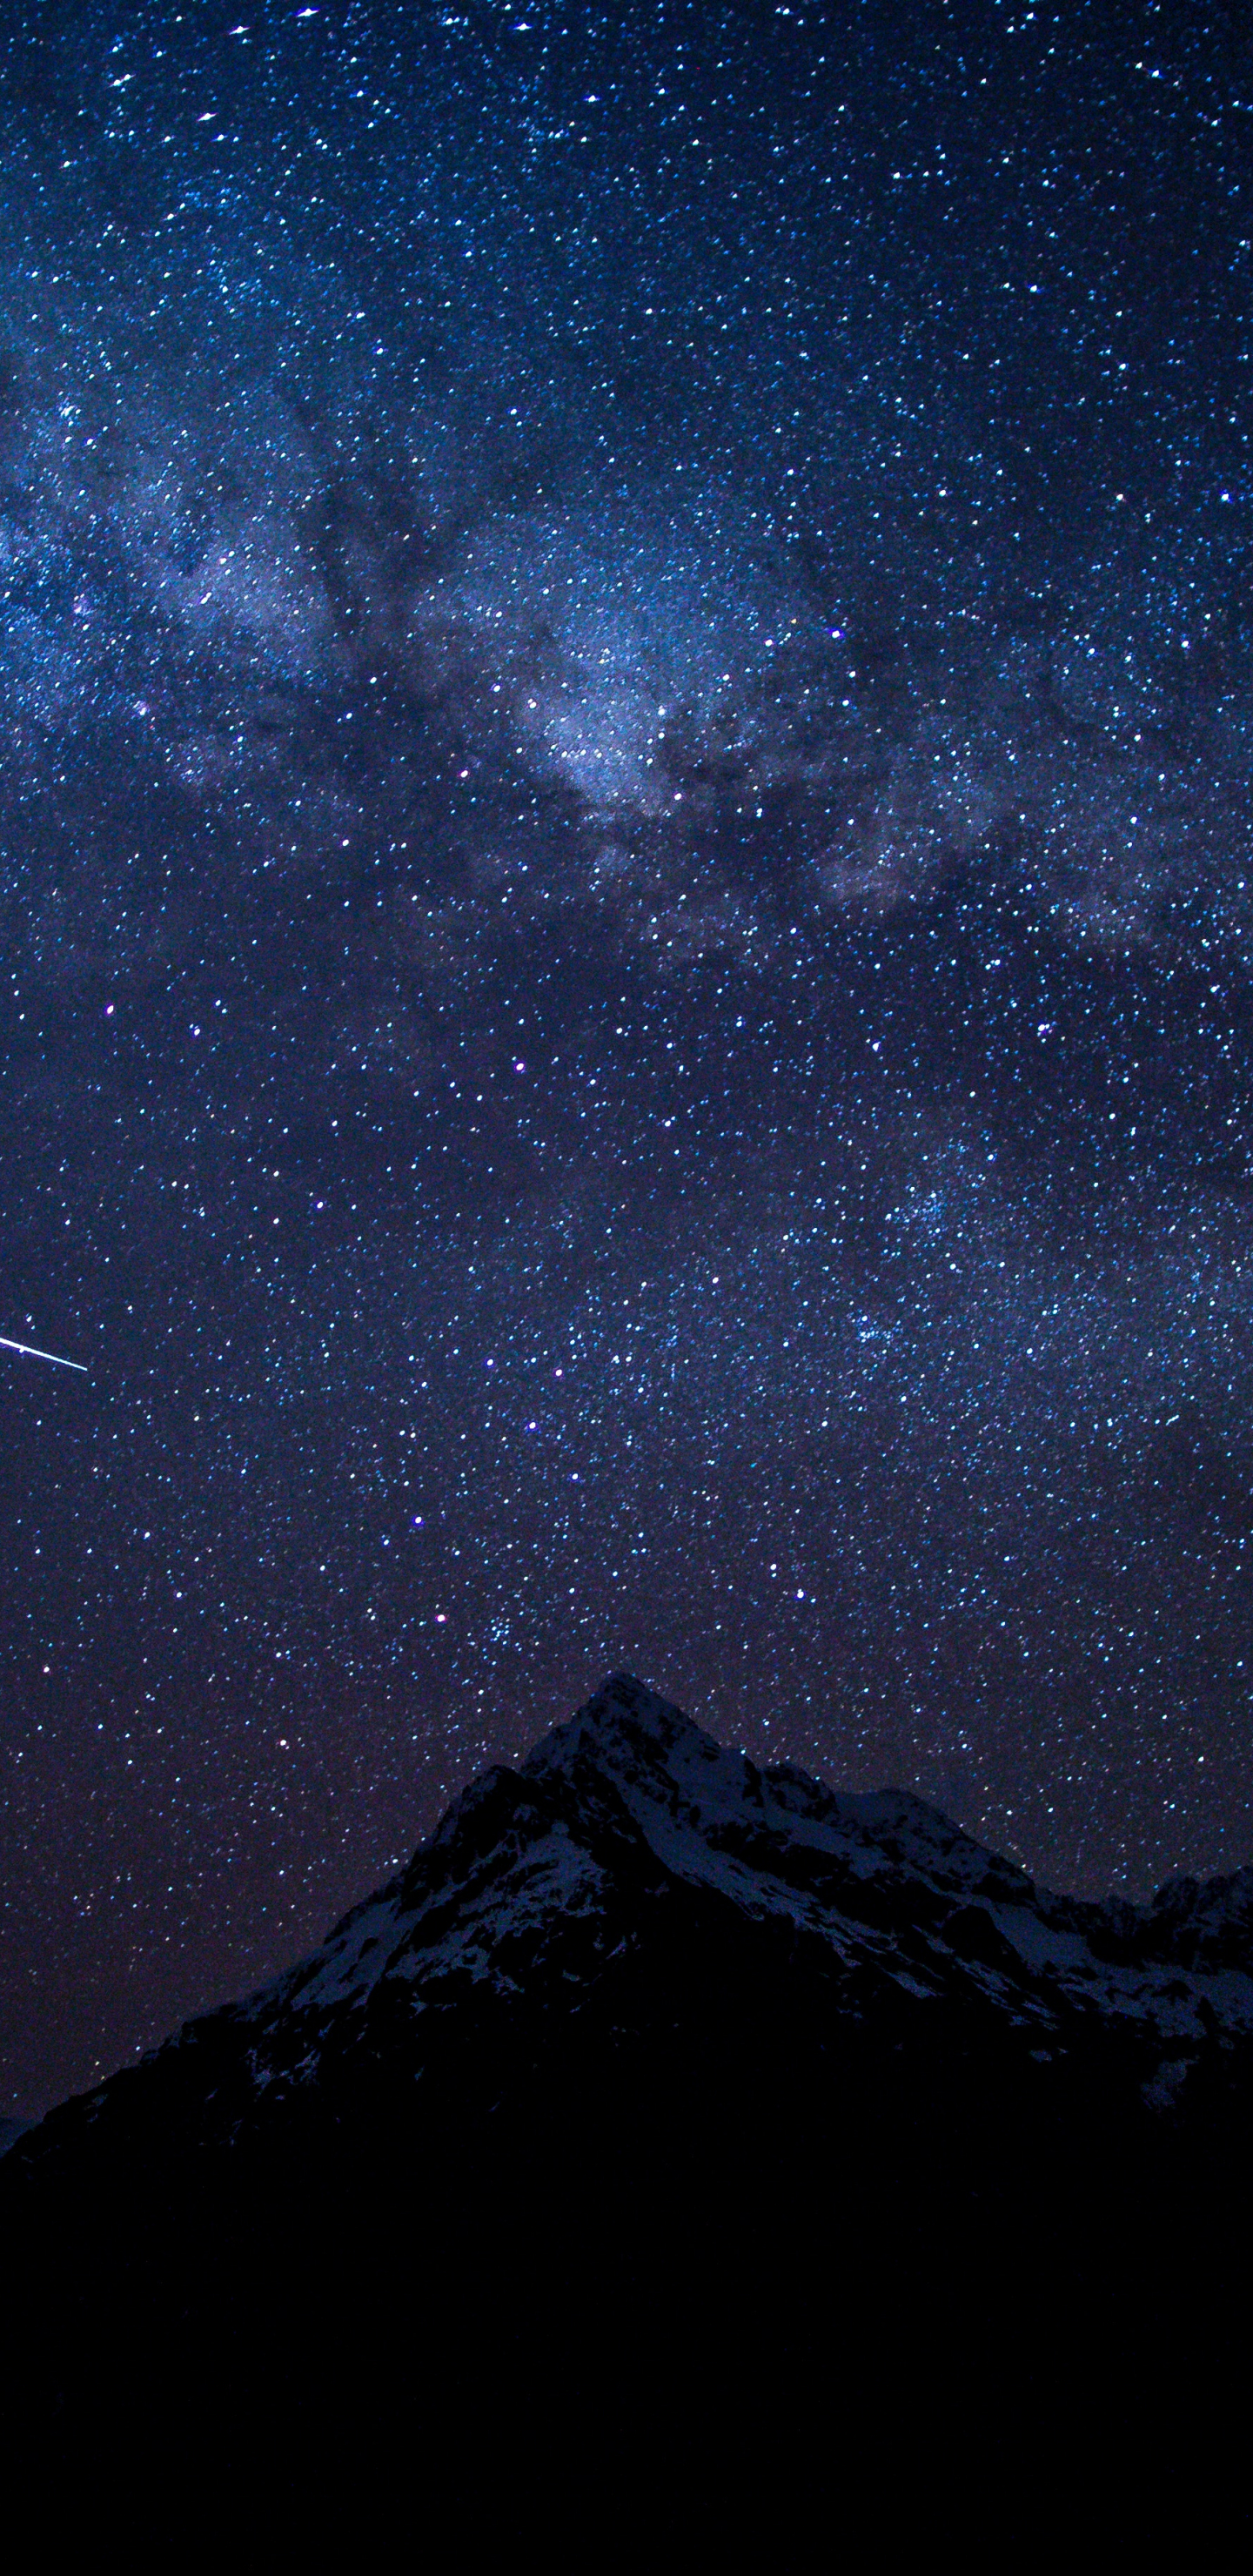 Starry sky, night, mountains, nature, 1440x2960 wallpaper